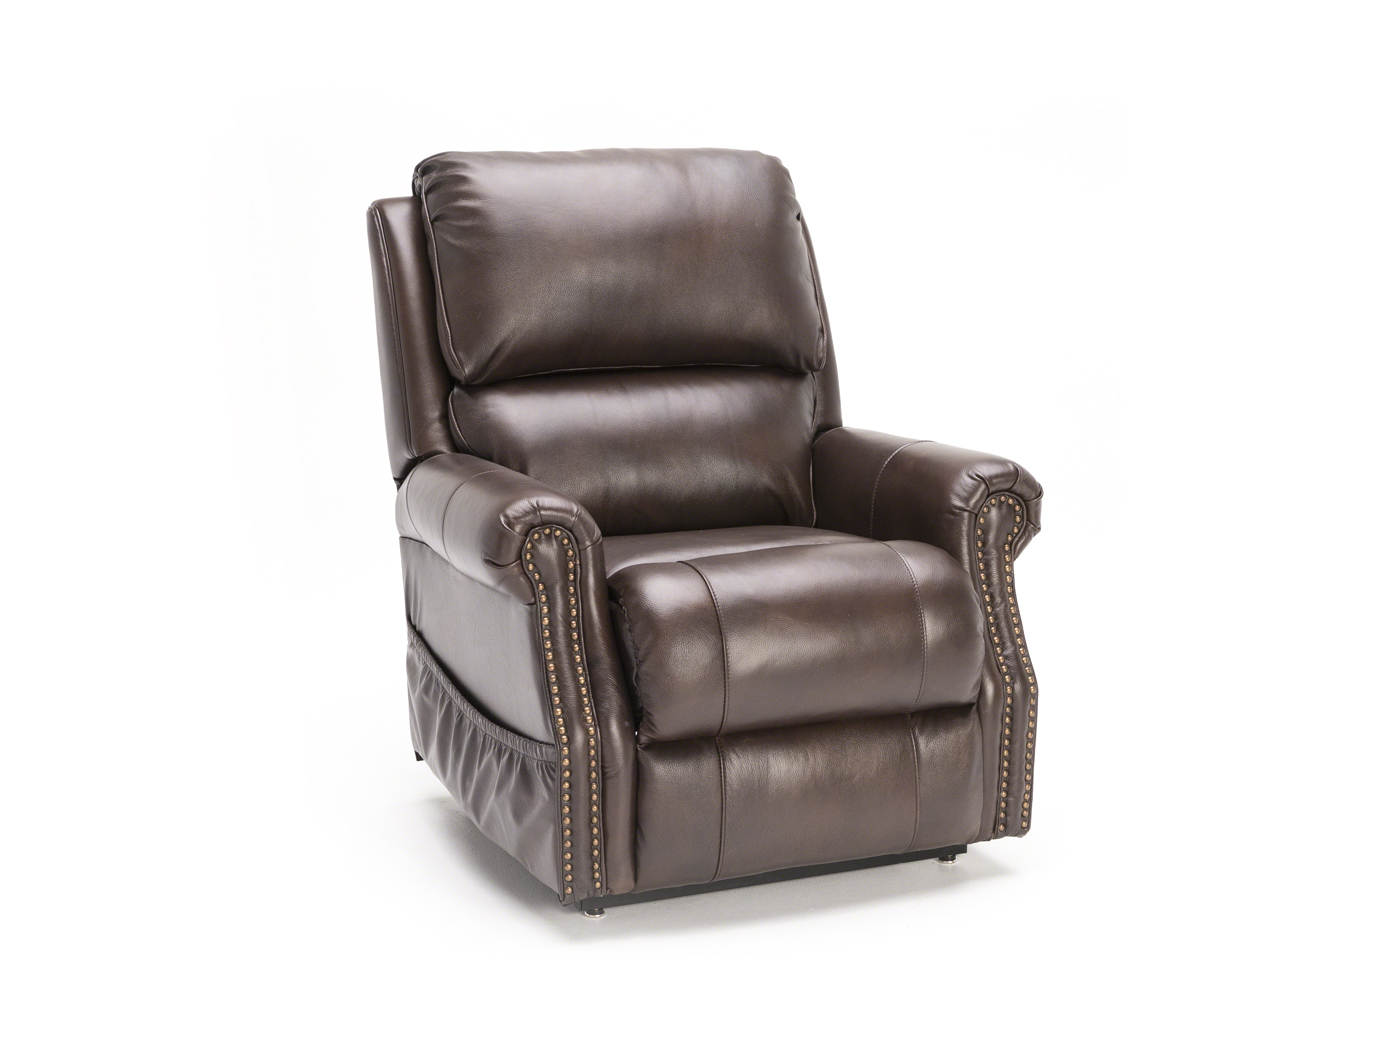 Direct designs dorie lift chair